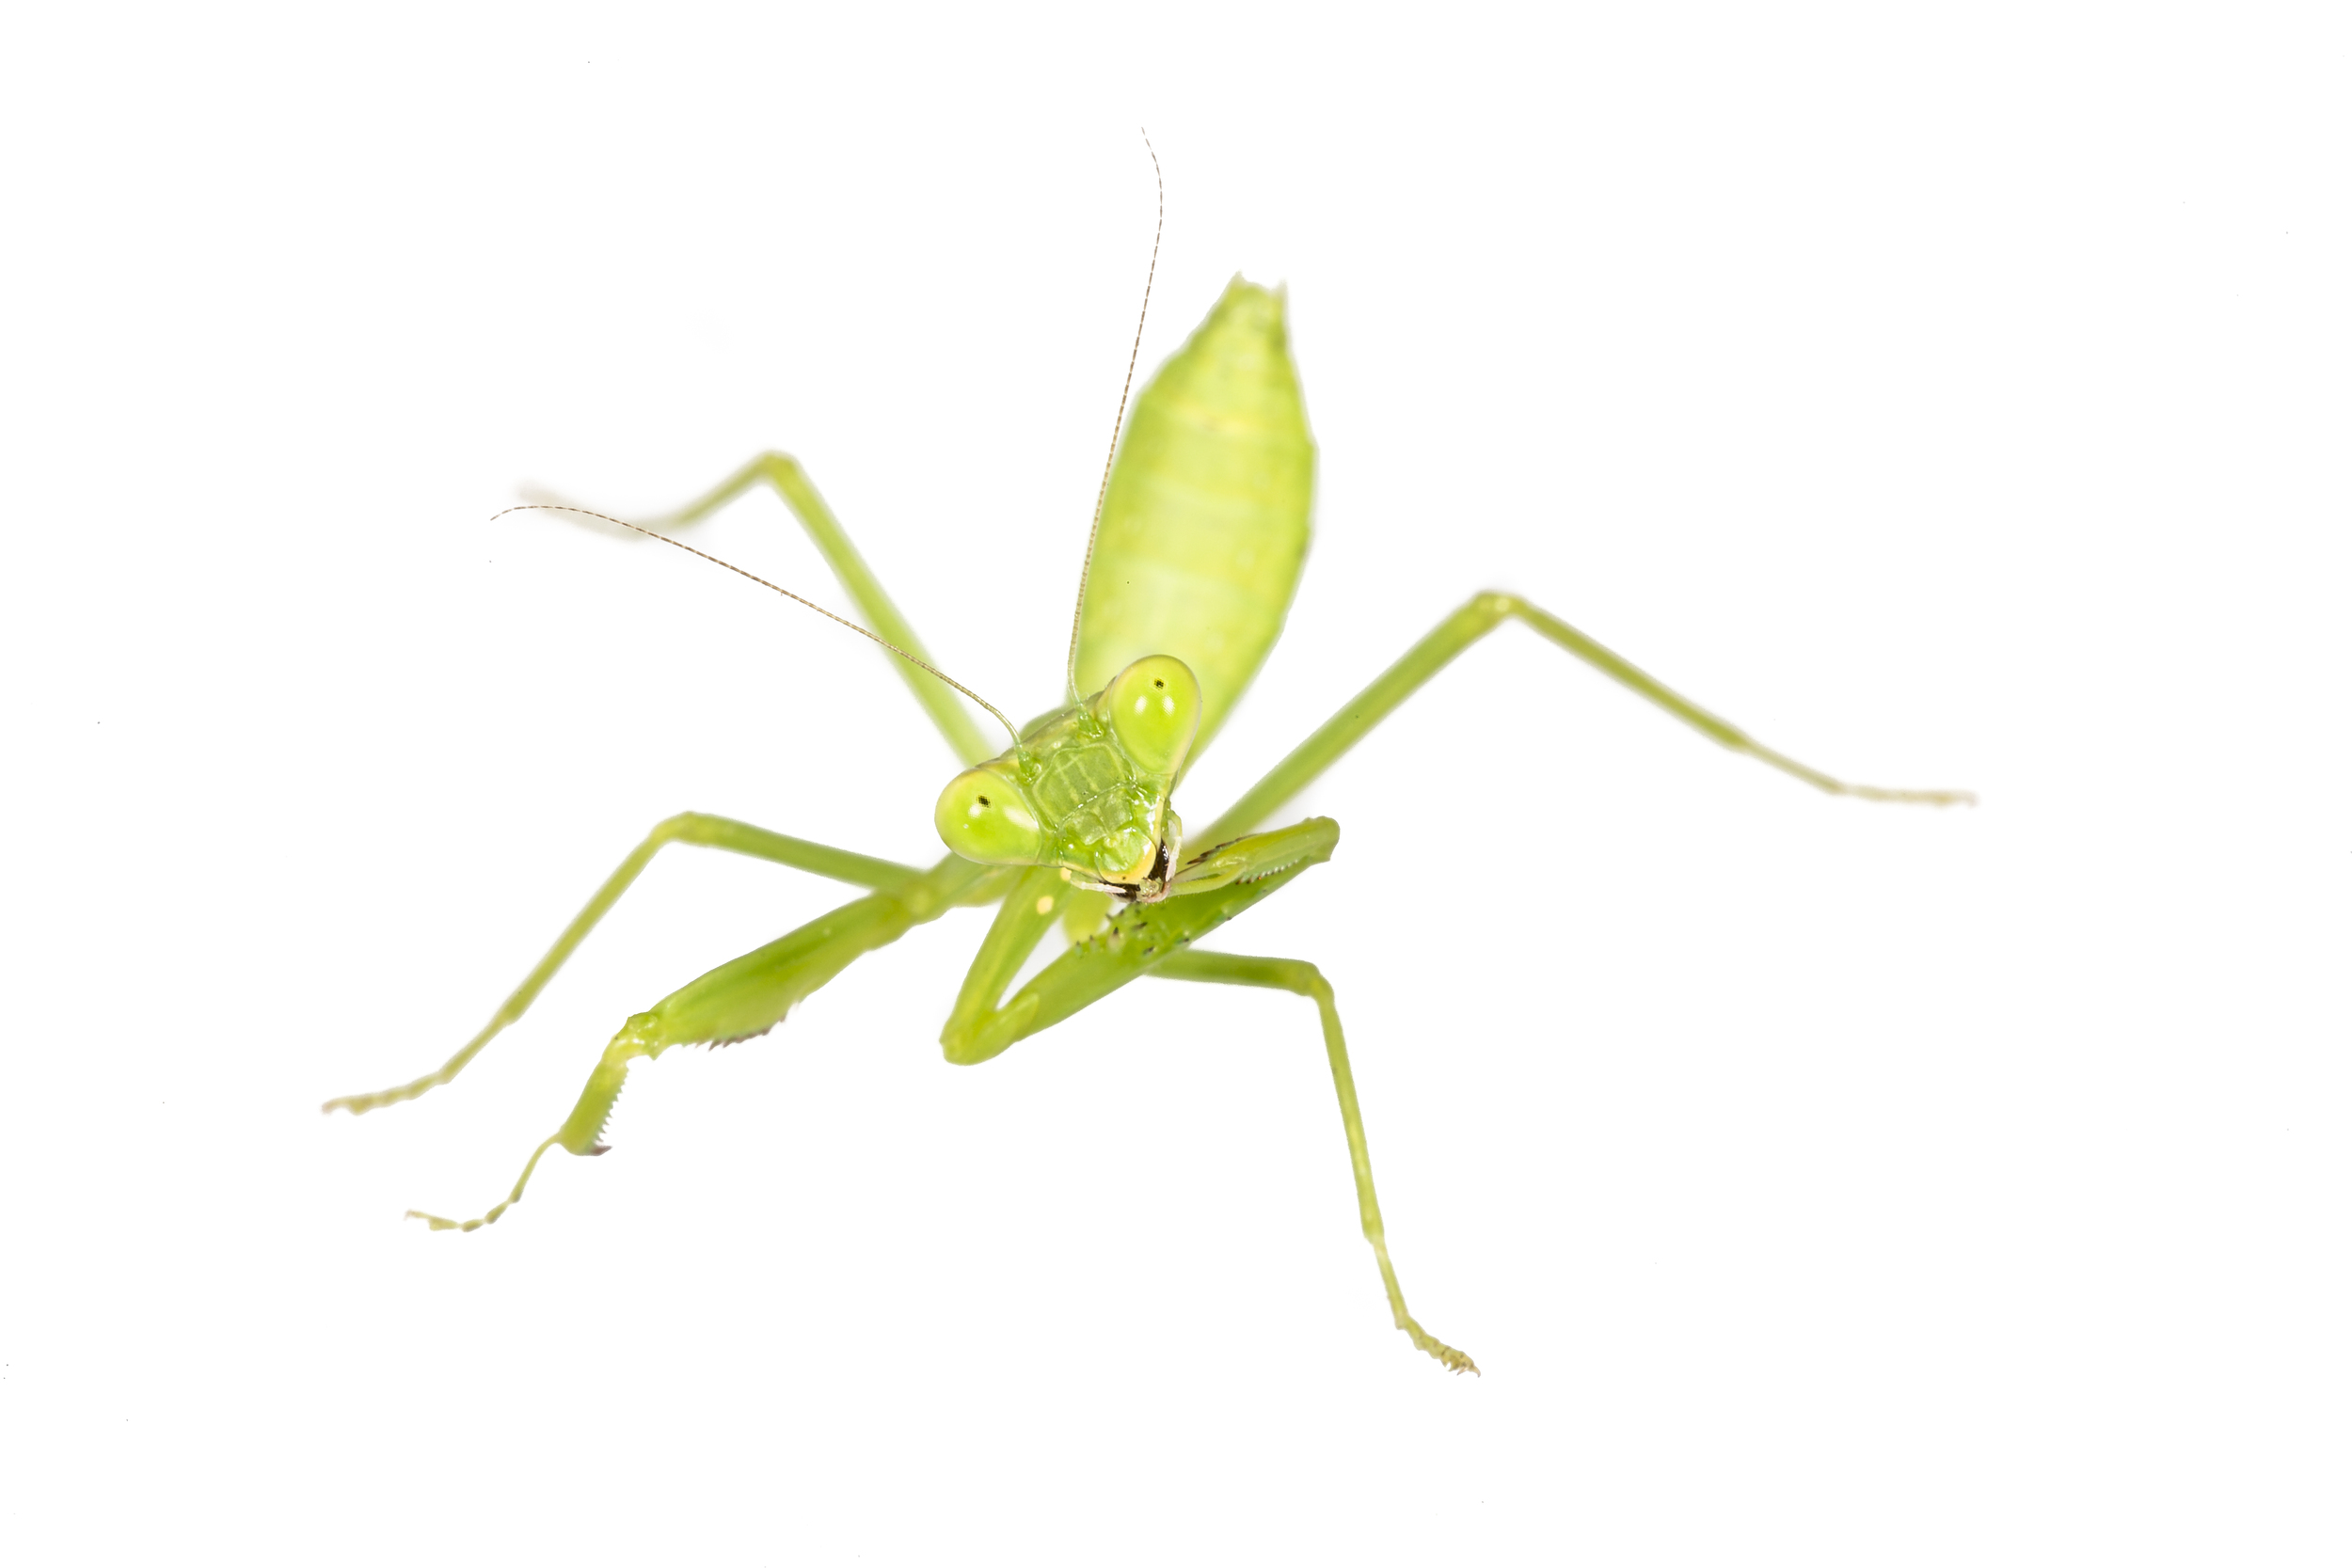 juvenile Giant Asian Mantis -  Hierodula patellifera